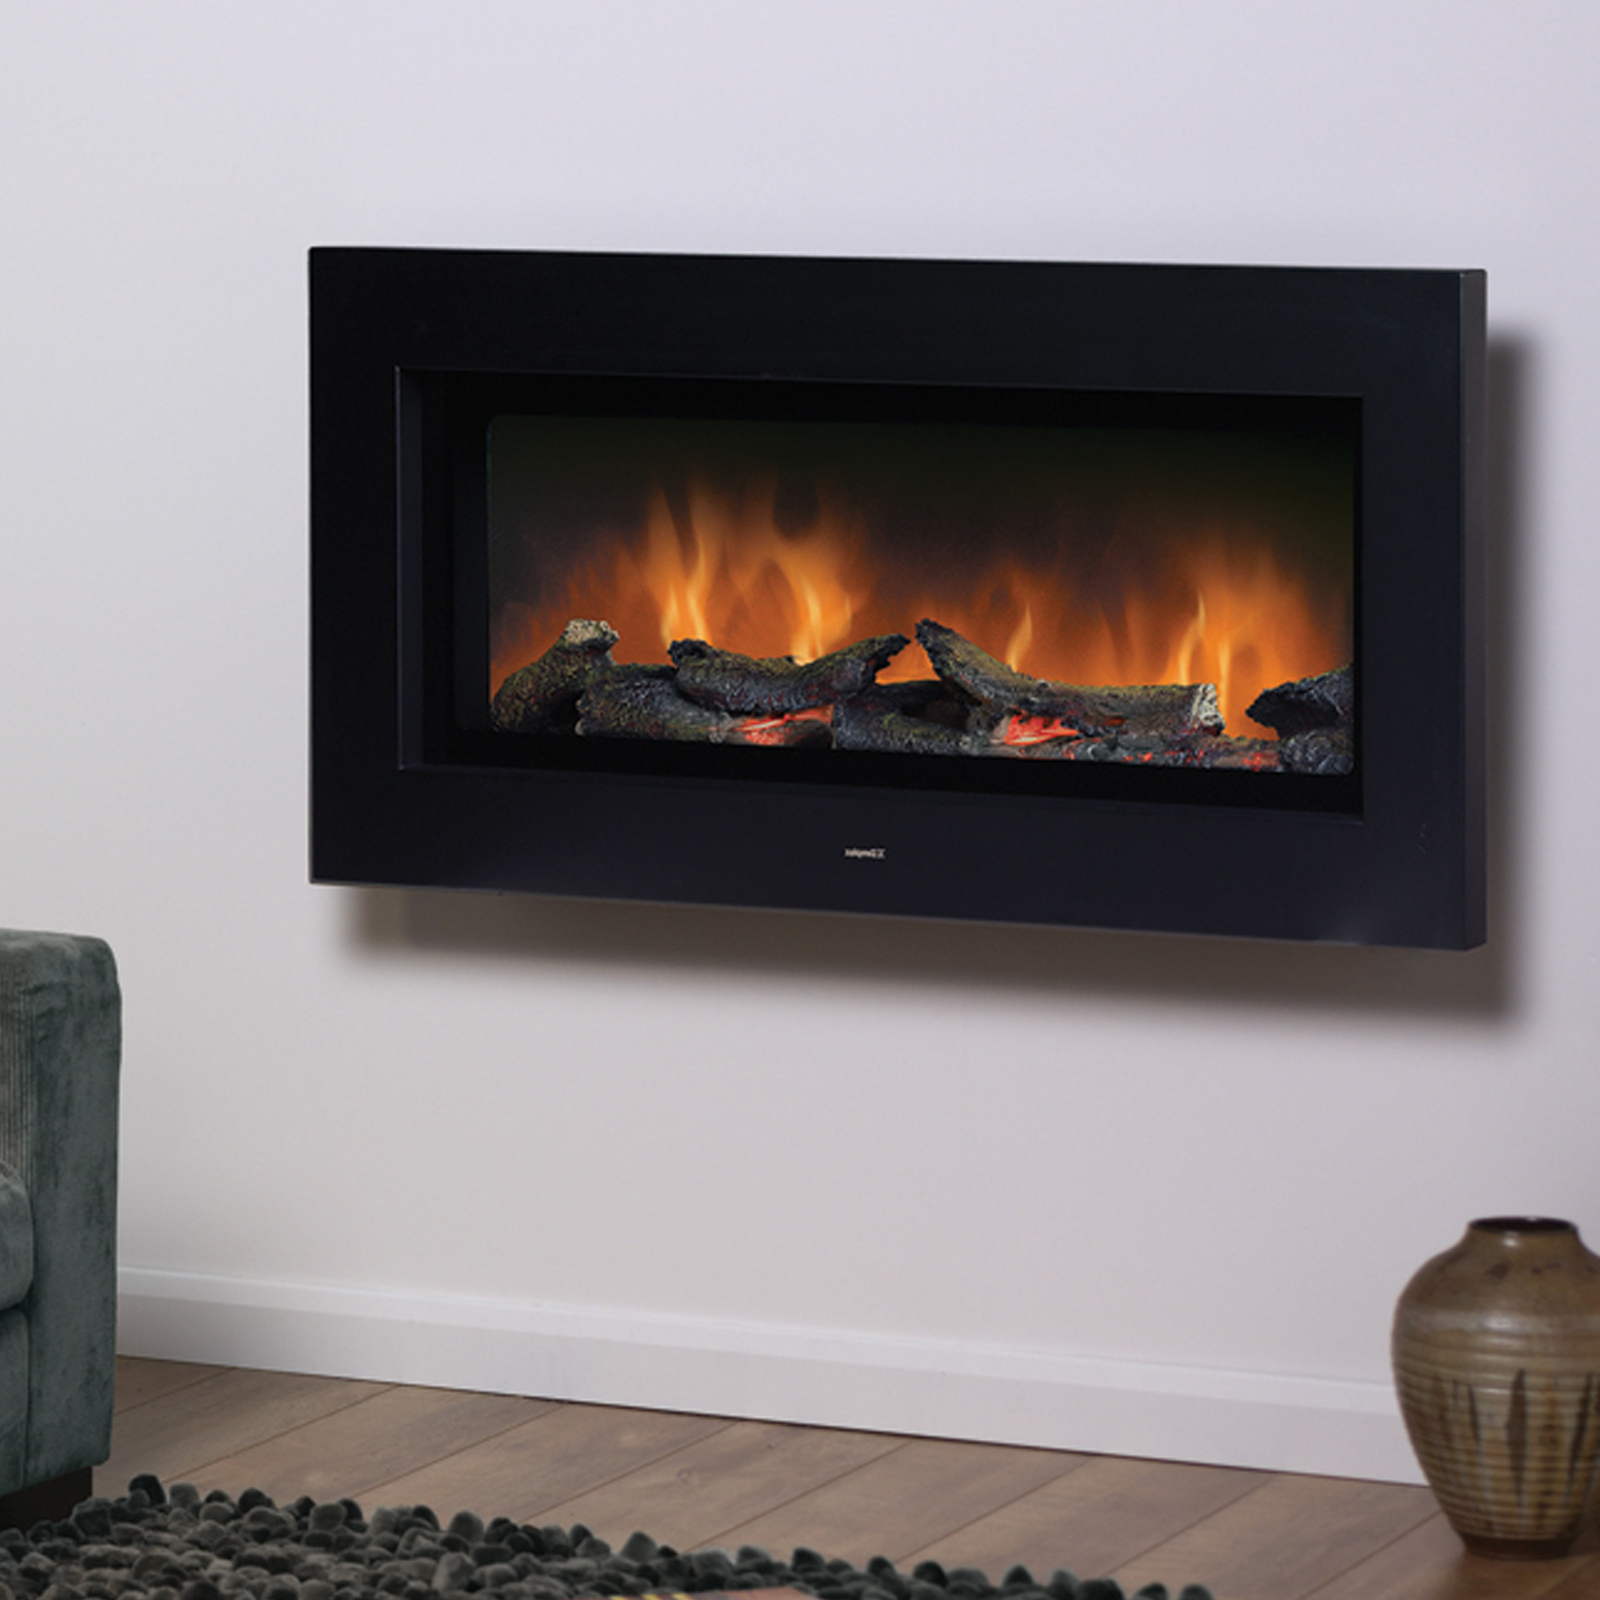 Brand New Dimplex Sp16 Optiflame Wall Mounted Electric Fire Free Fast Ebay